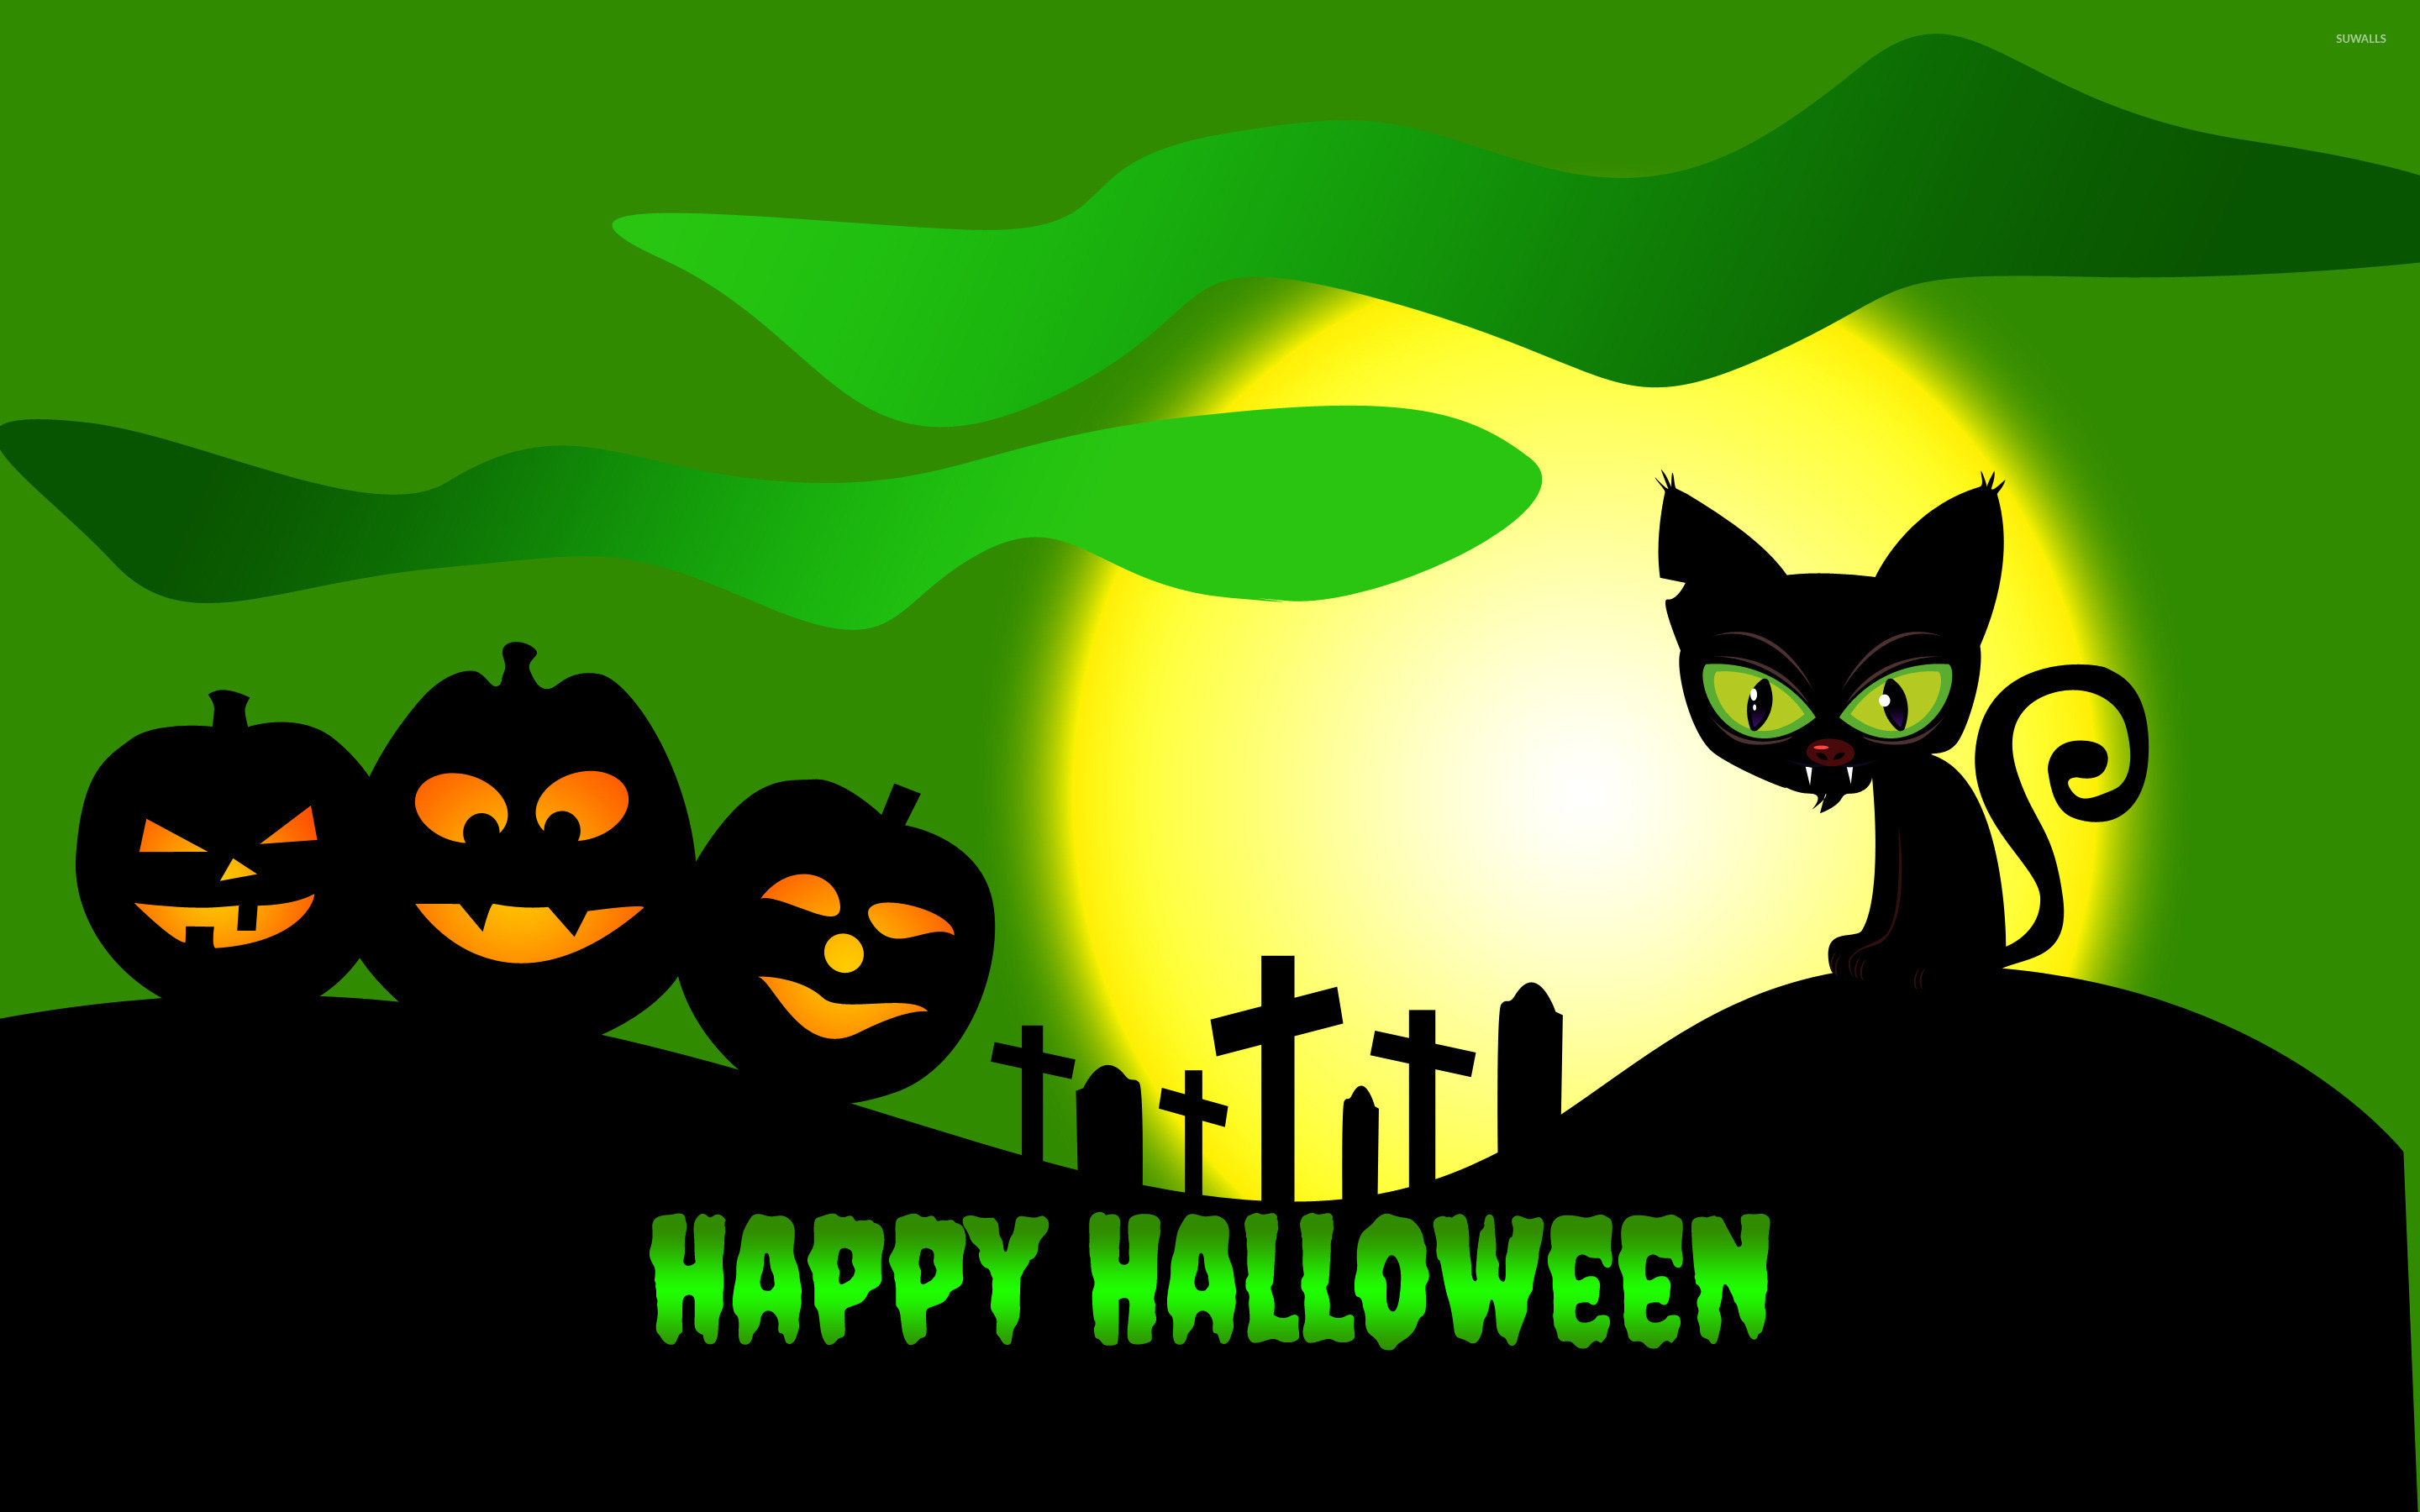 Happy Halloween [7] Wallpaper